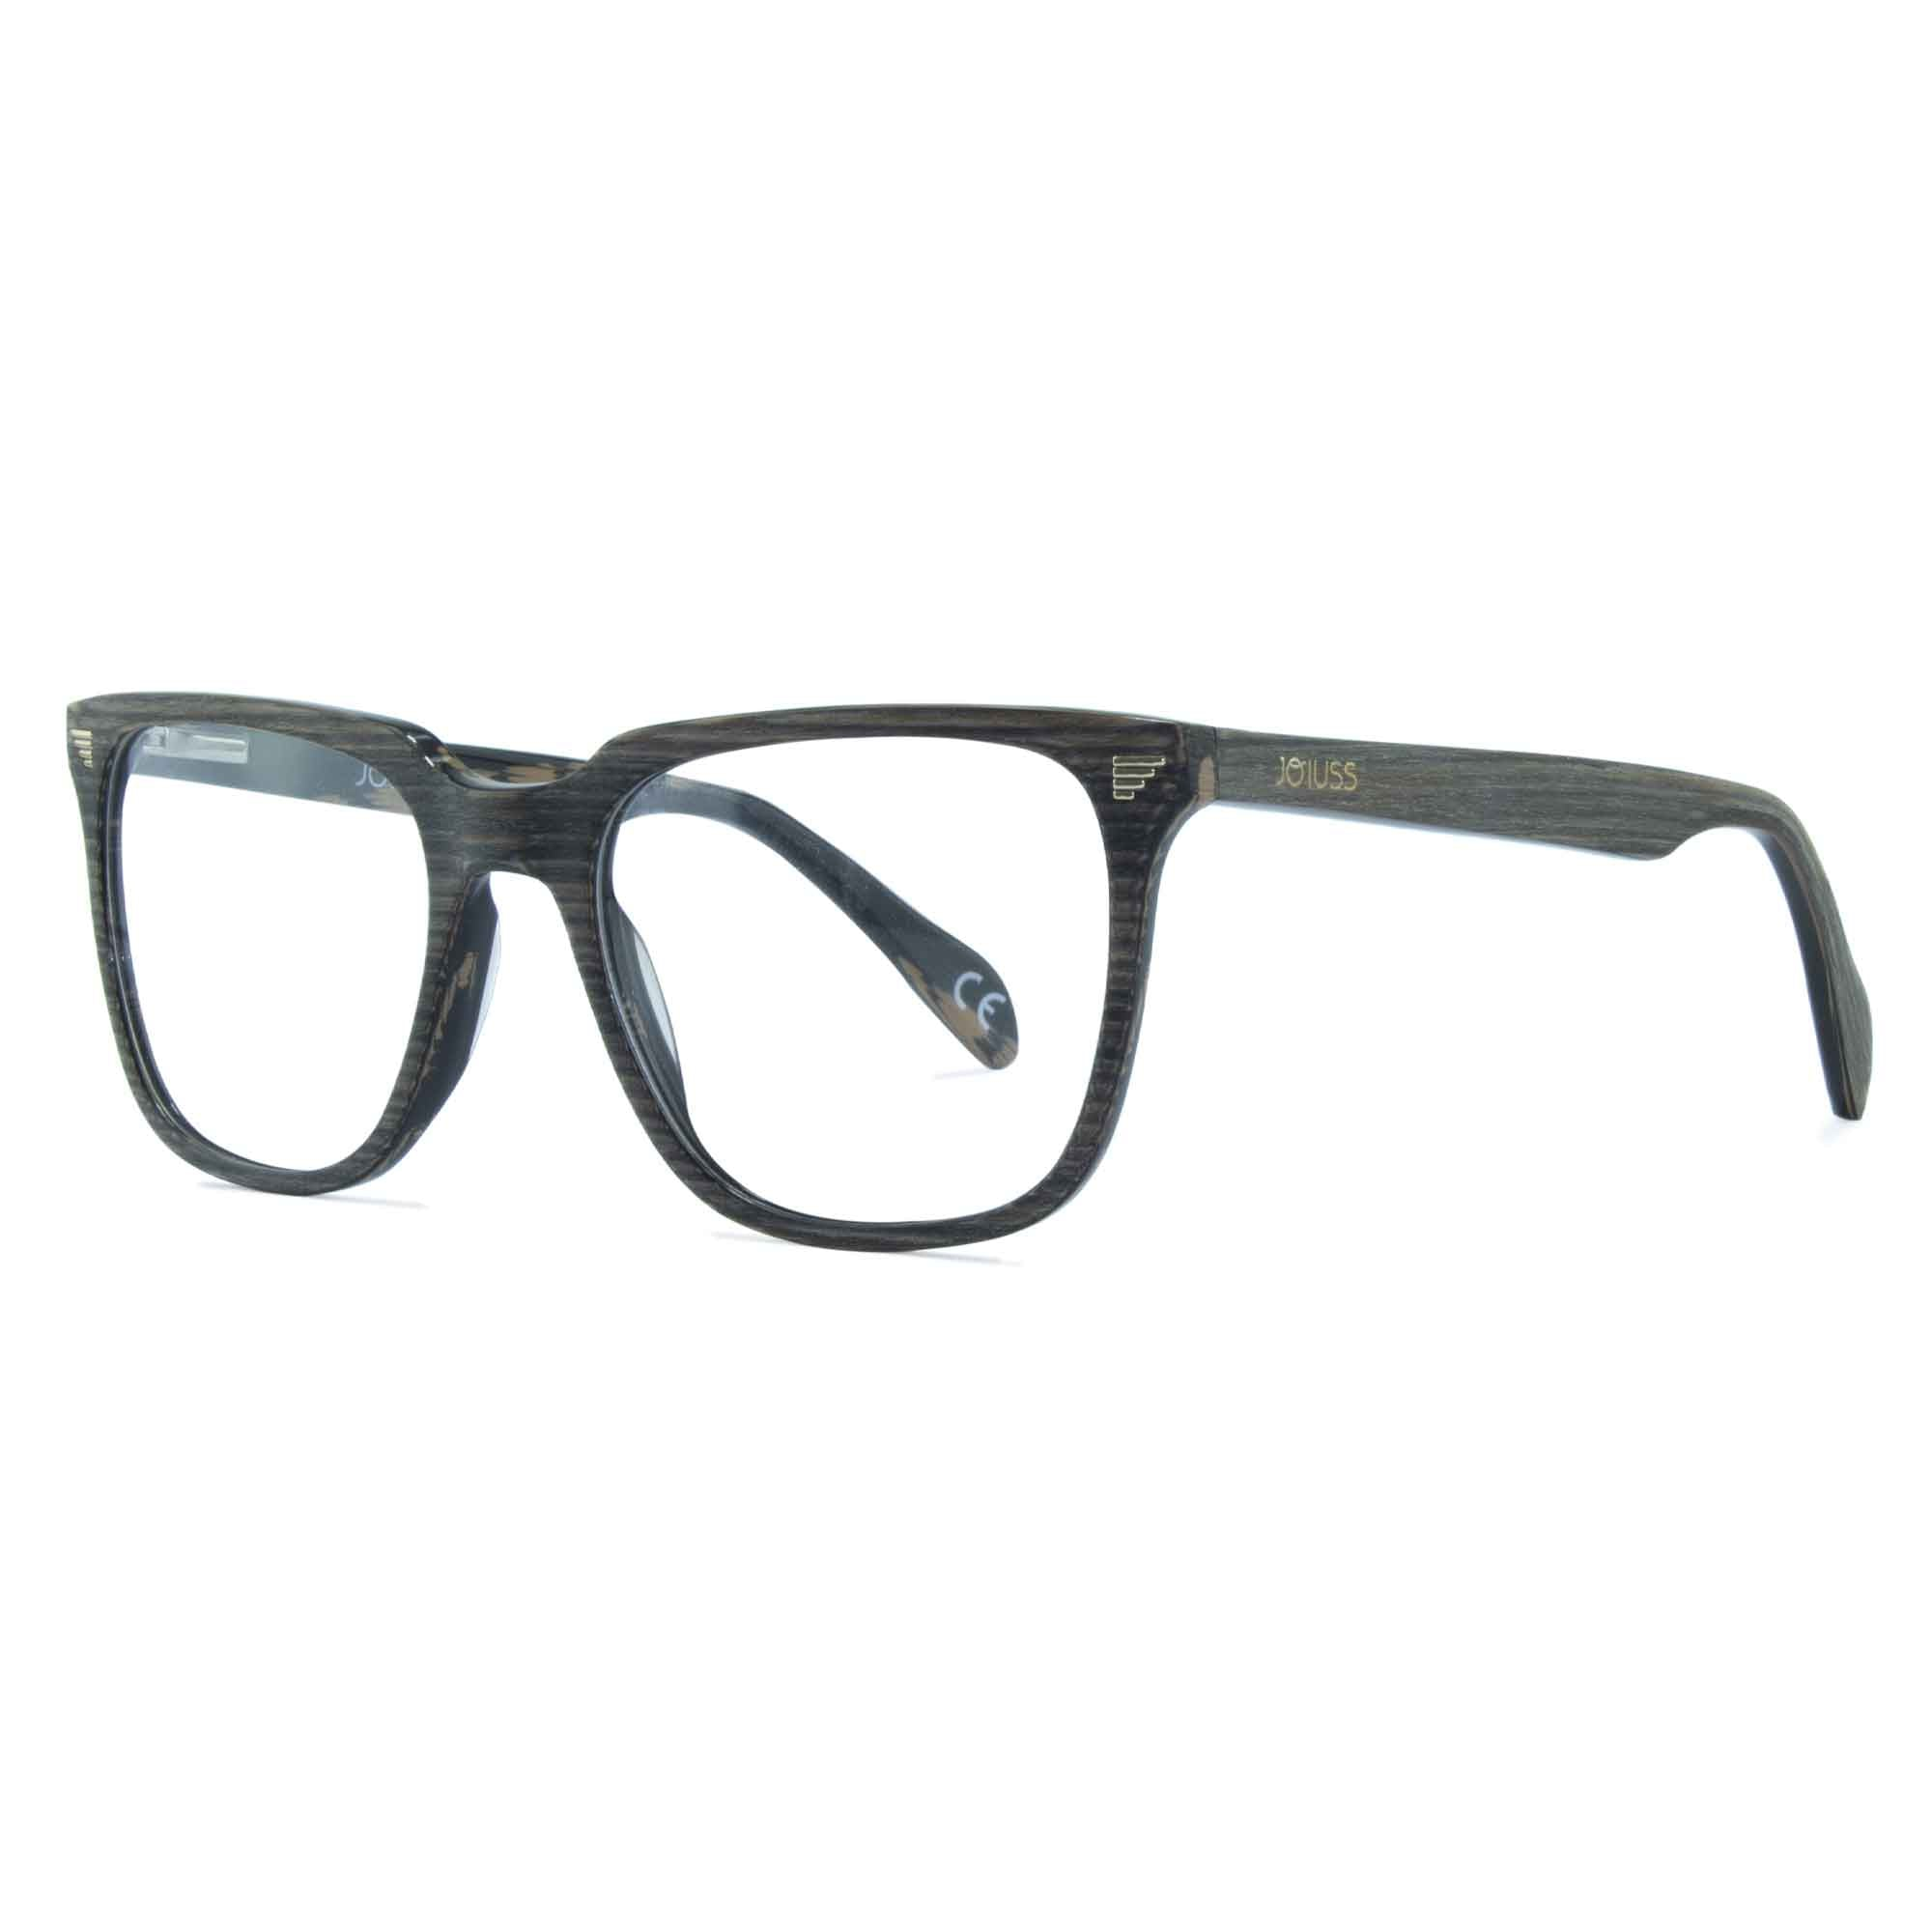 dark grey wayfarer glasses